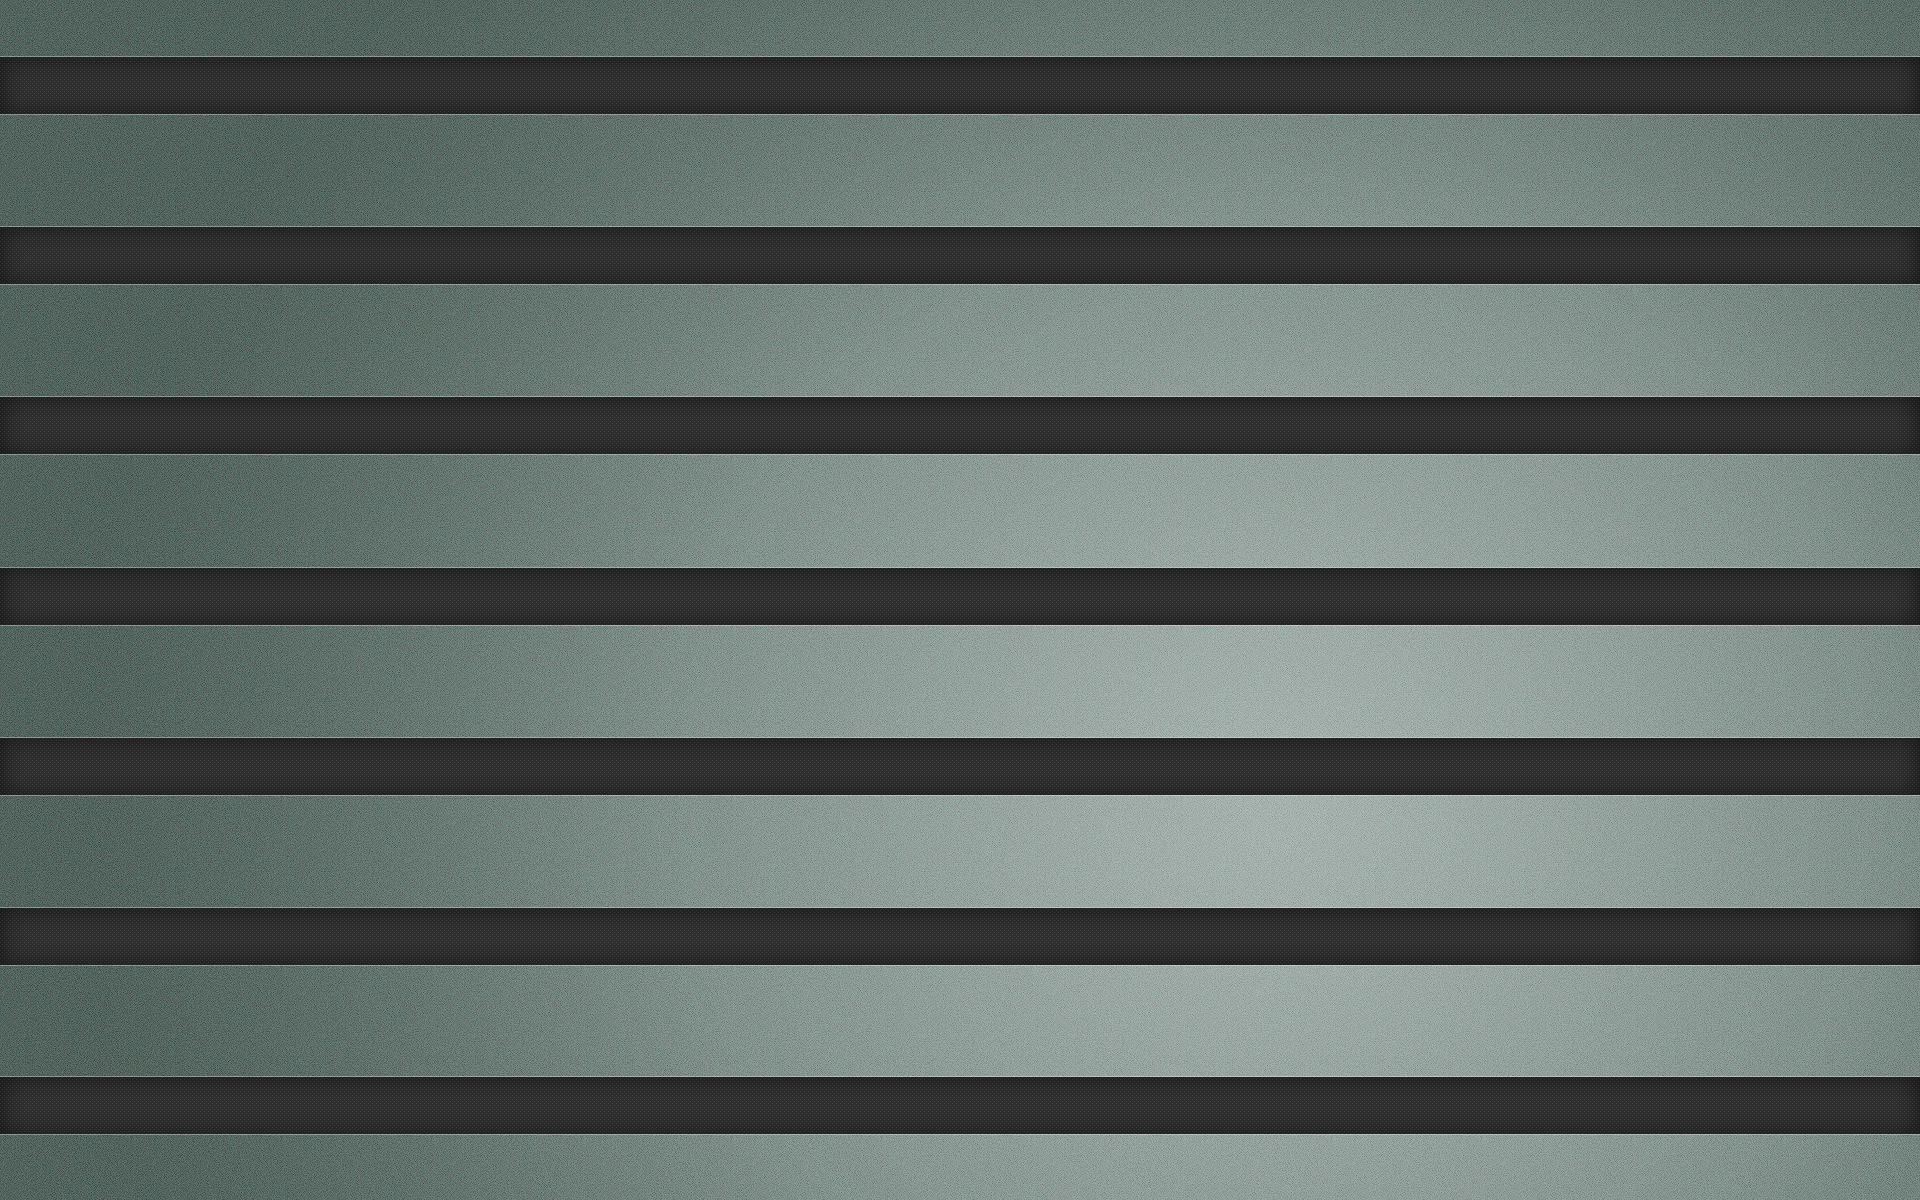 Line Texture Images : Horizontal lines texture backgrounds